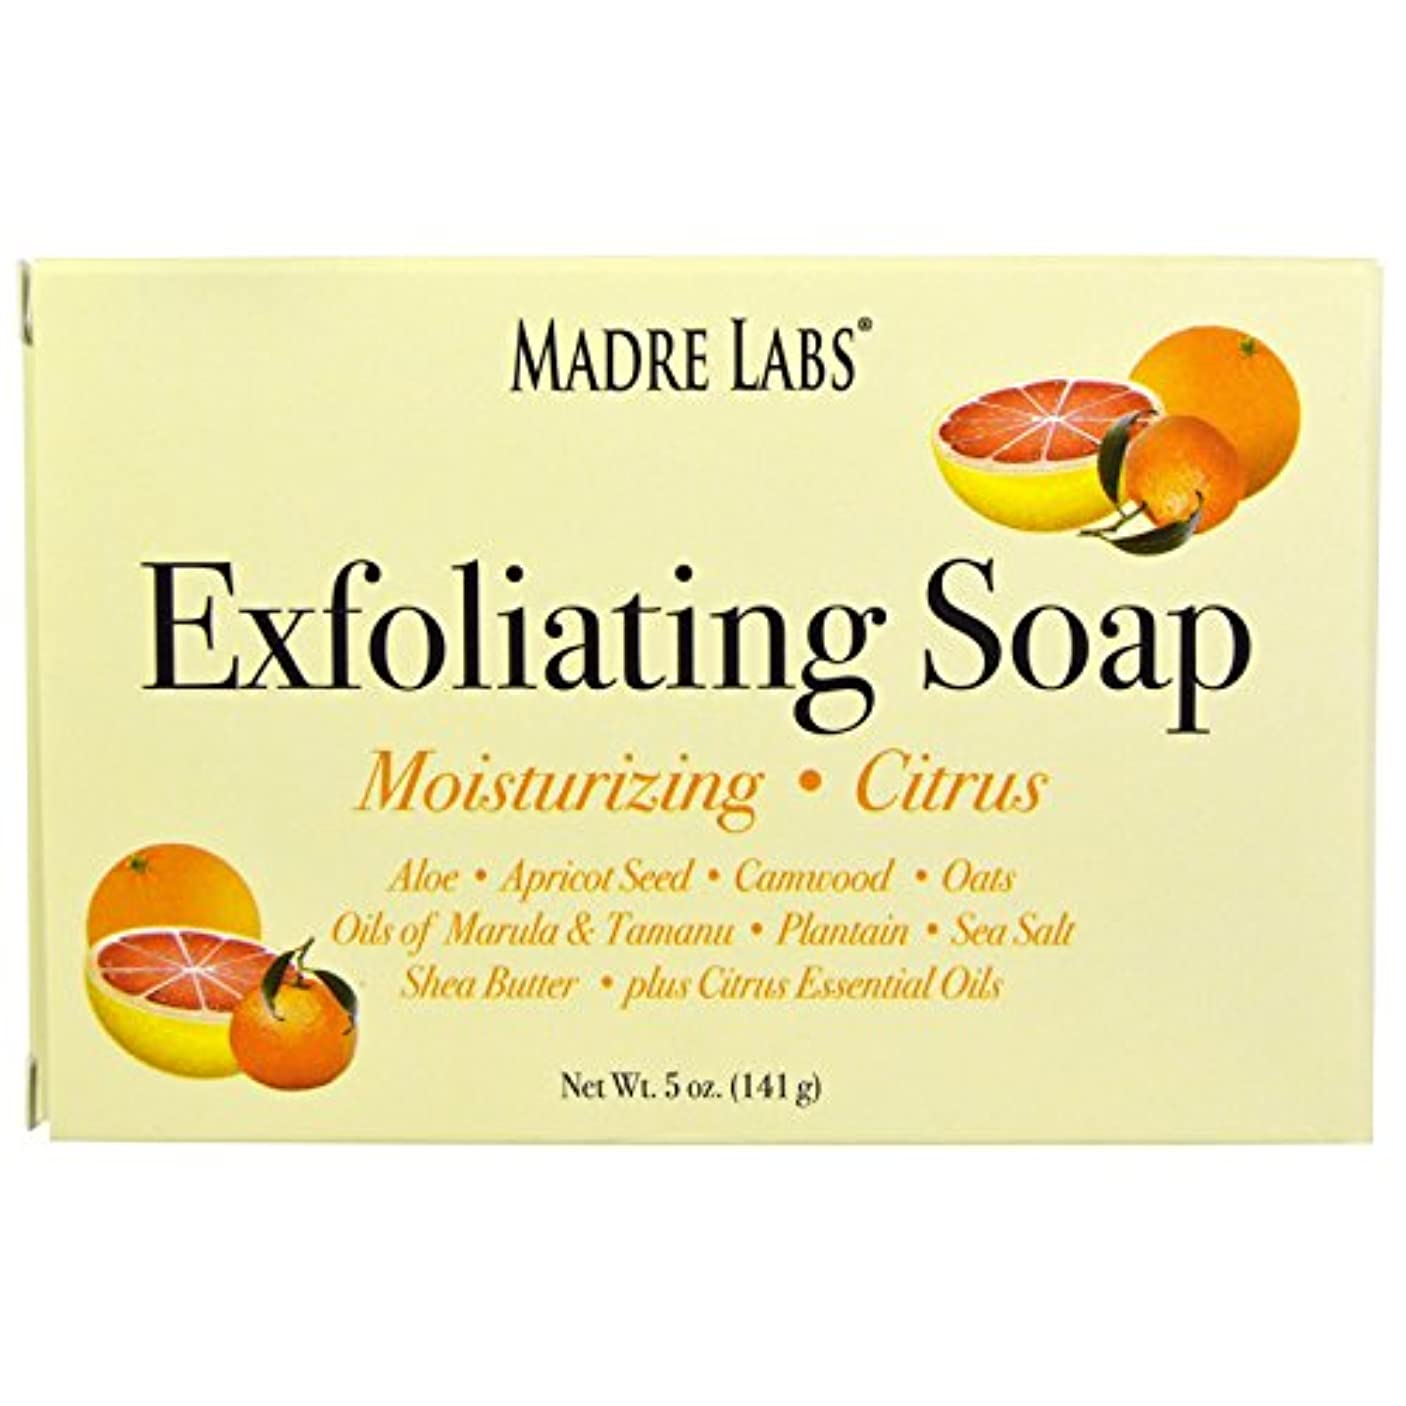 マドレラブ シアバター入り石鹸 柑橘フレーバー Madre Labs Exfoliating Soap Bar with Marula & Tamanu Oils plus Shea Butter